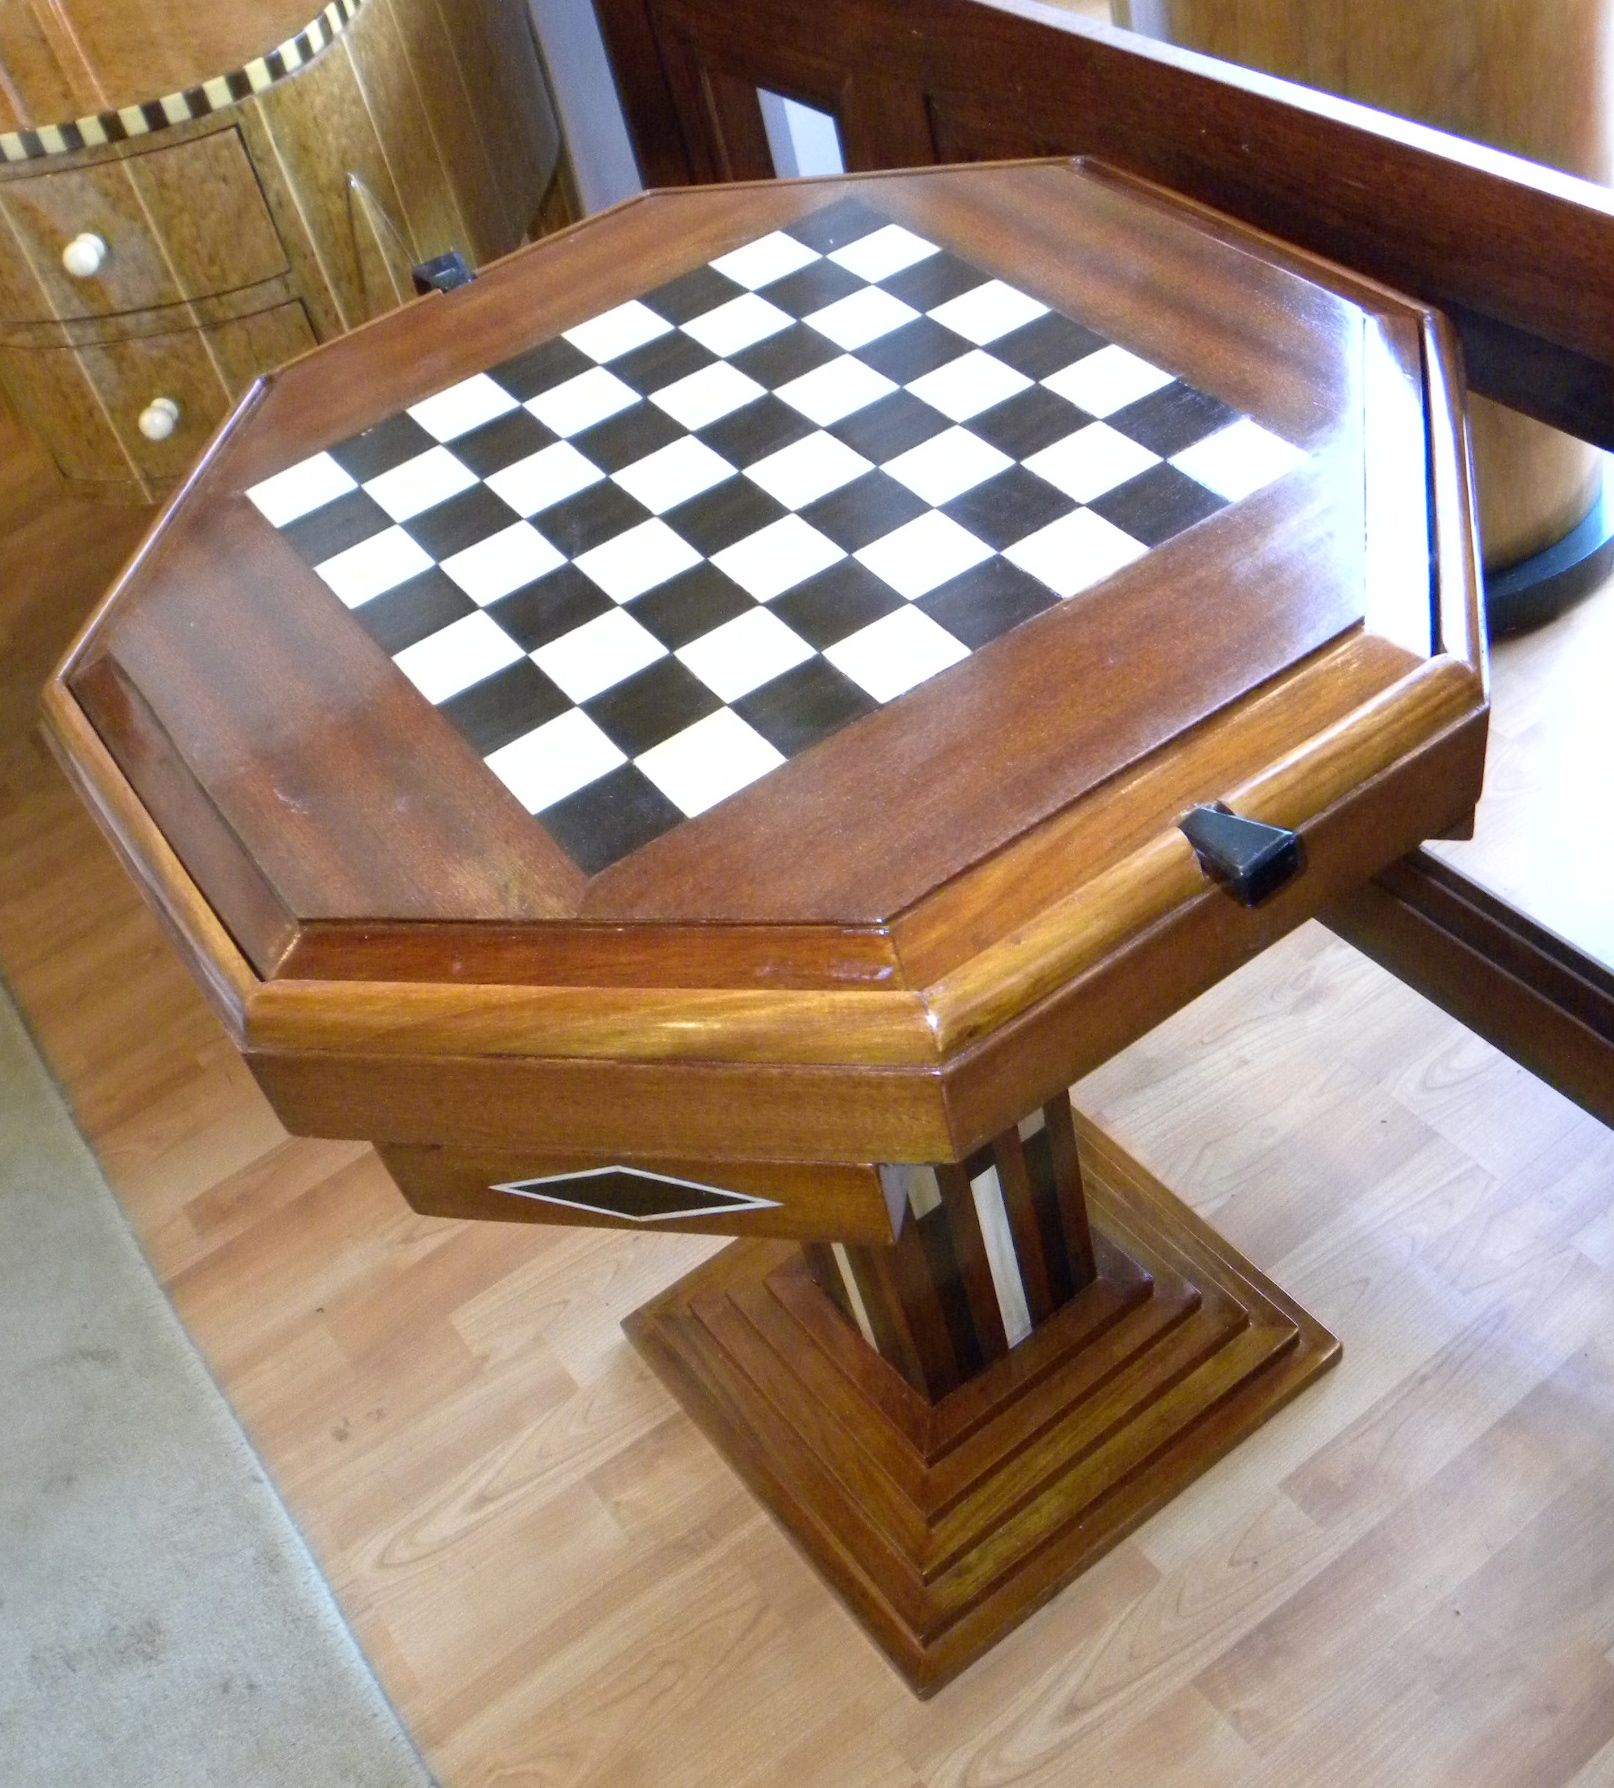 small gaming chair black outdoor rocking chairs art deco game table chess checkers backgammon